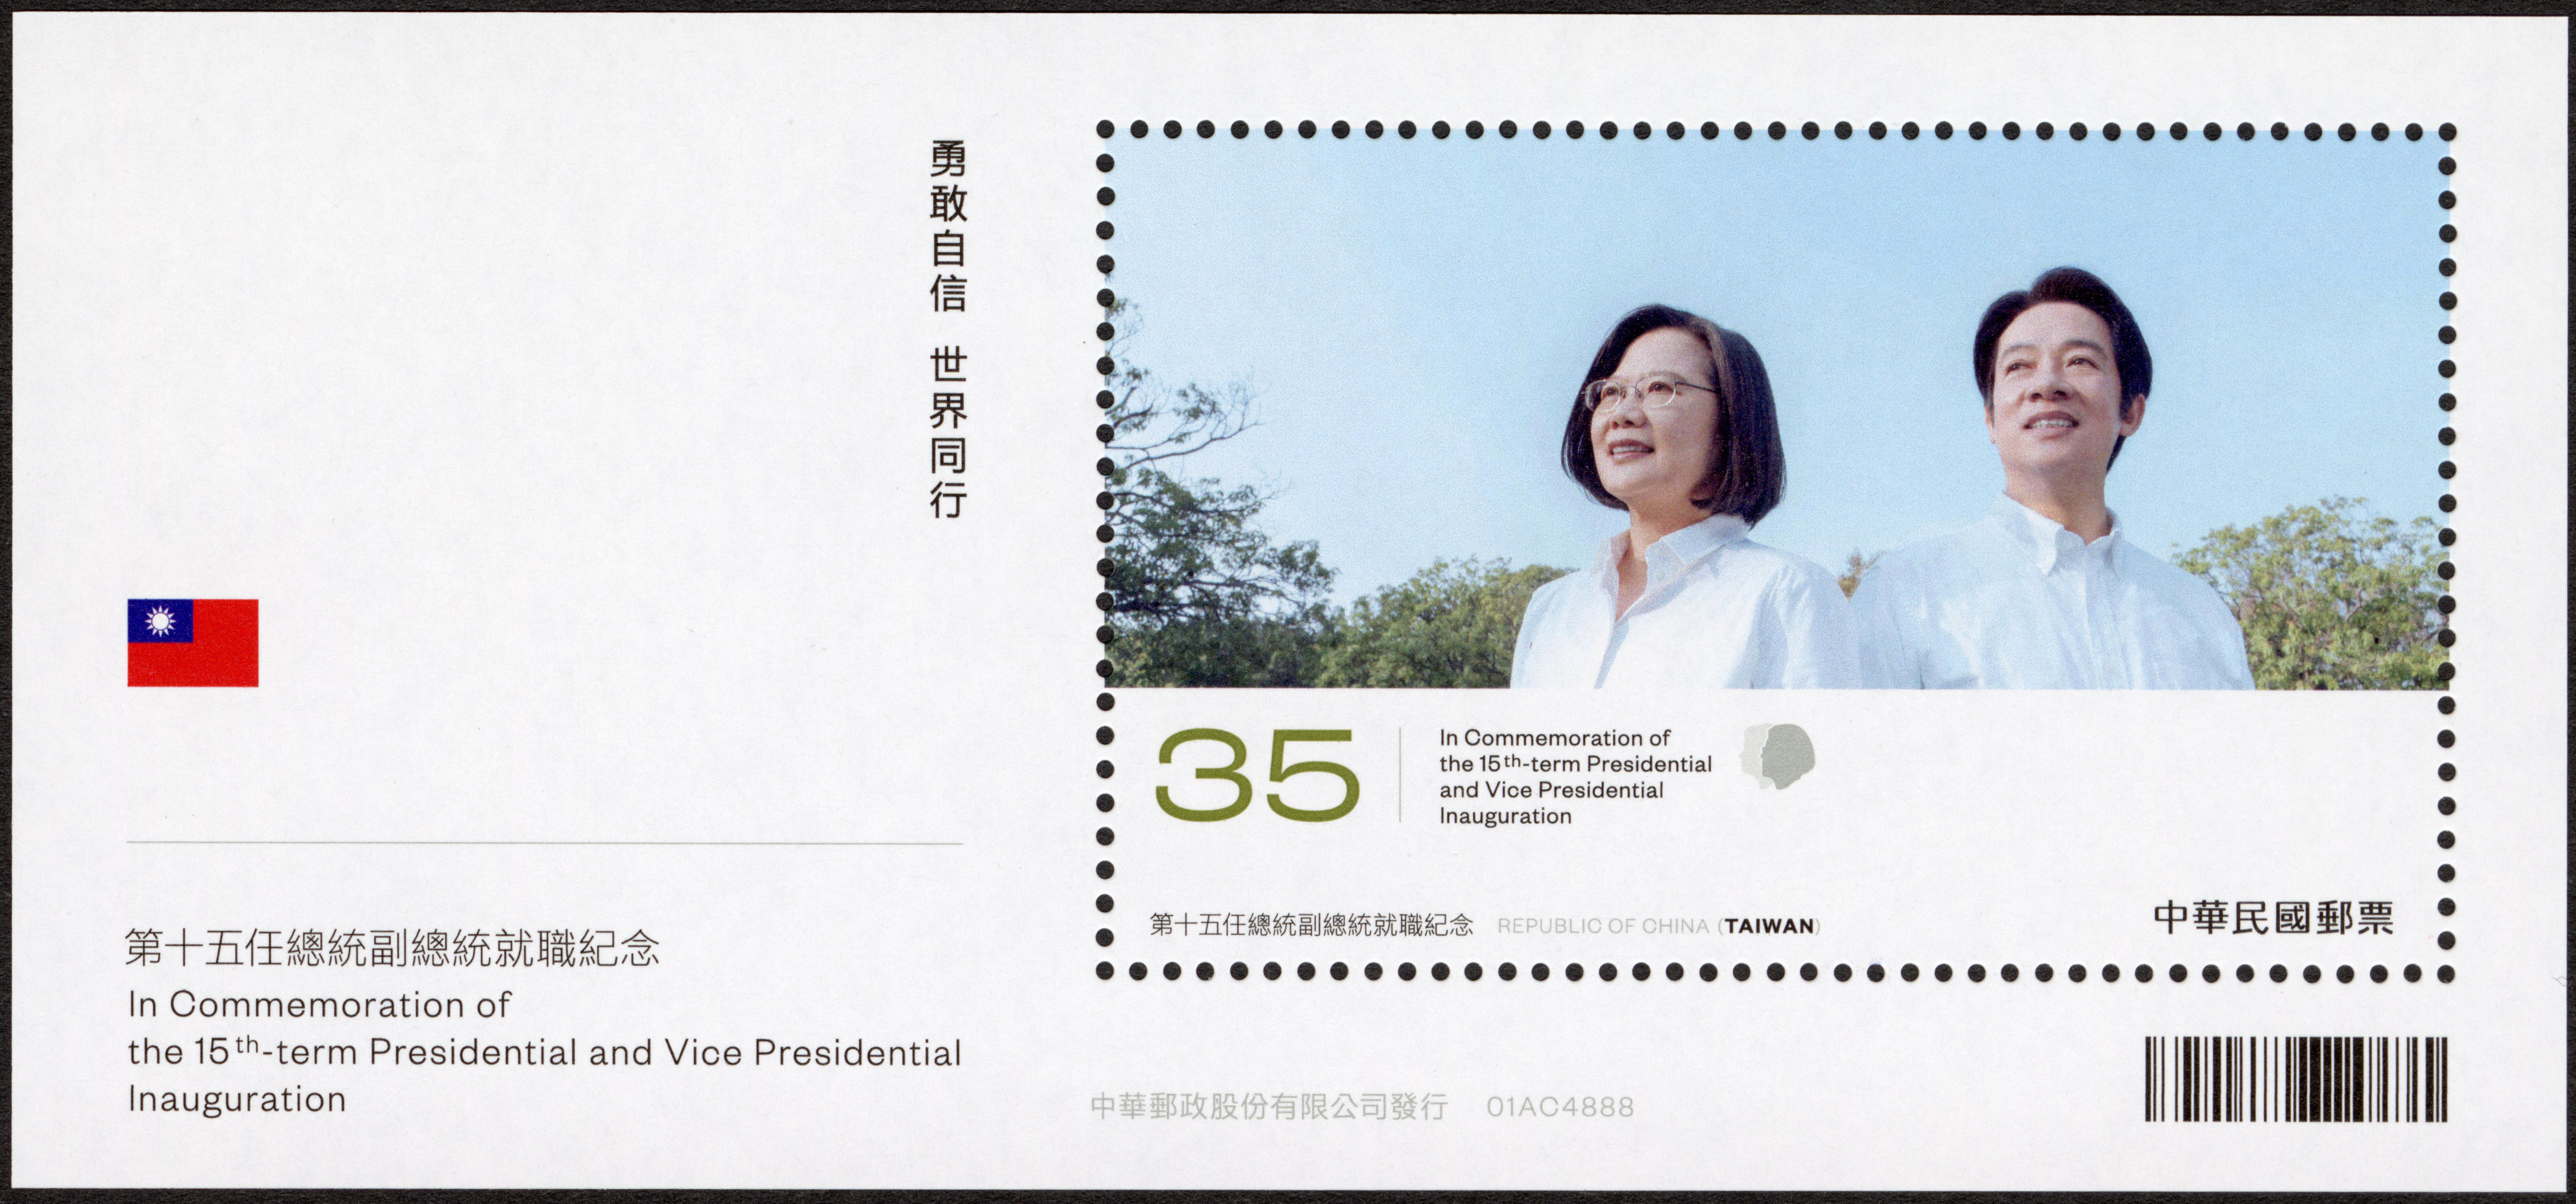 The Inauguration of the 15th-term President and Vice President Commemorative Issue